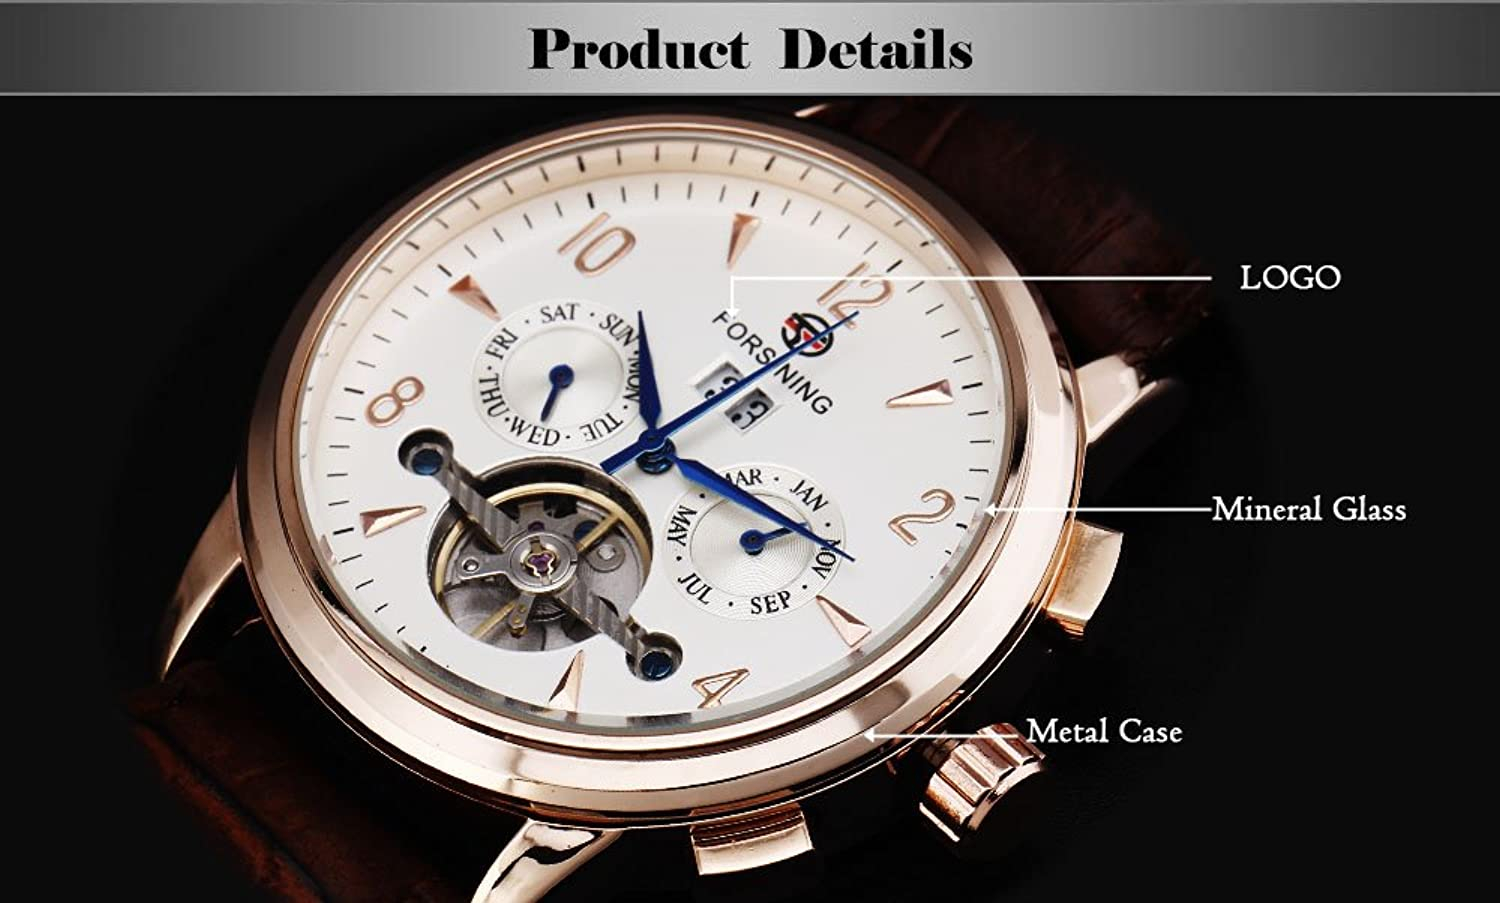 Amazon.com: FORSINING Mens Classic Multi-Function Leather Strap Auto Date Michanical Tourbillon Automatic Watches: Watches